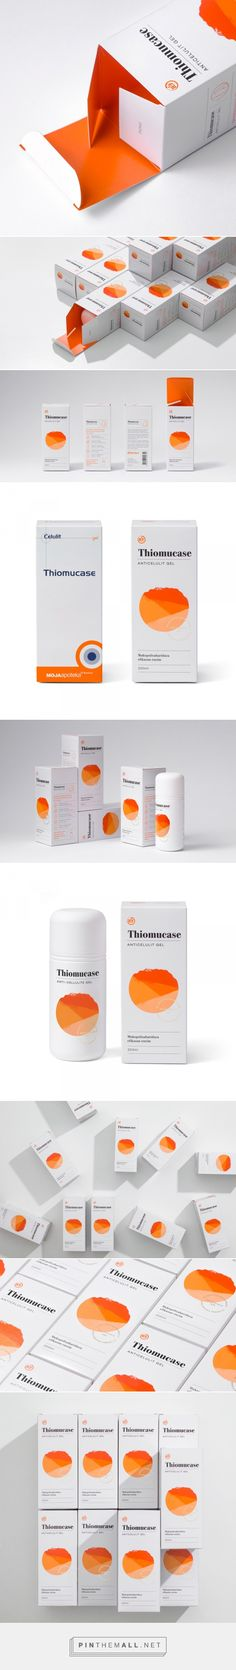 Thiomucase Redesign - Packaging of the World - Creative Package Design Gallery - http://www.packagingoftheworld.com/2017/09/thiomucase-redesign.html